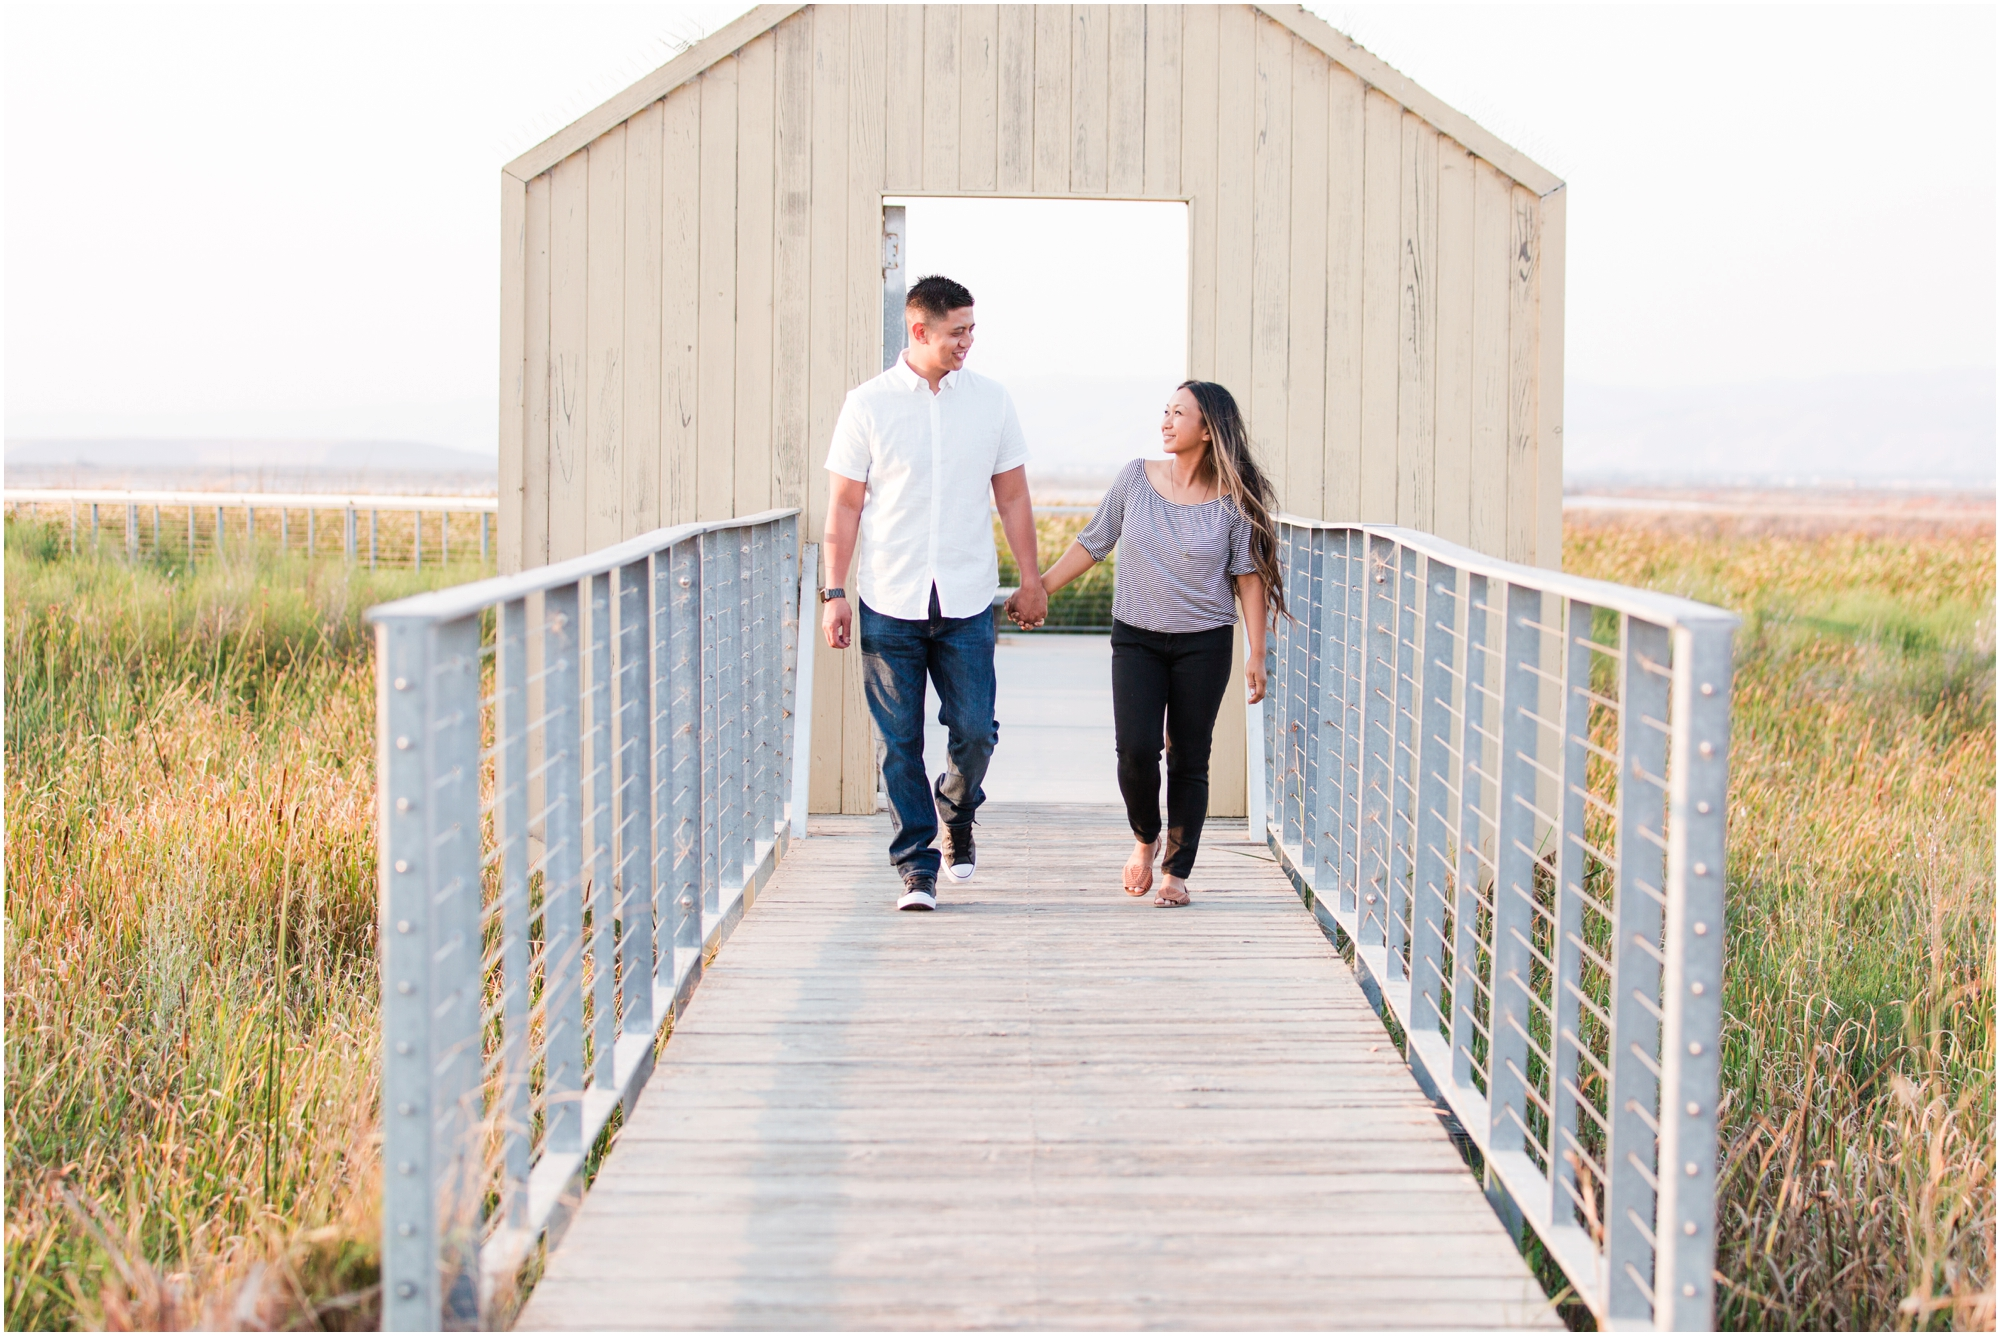 Willow Glan & Alviso Marina engagement pictures by Briana Calderon Photography_2114.jpg